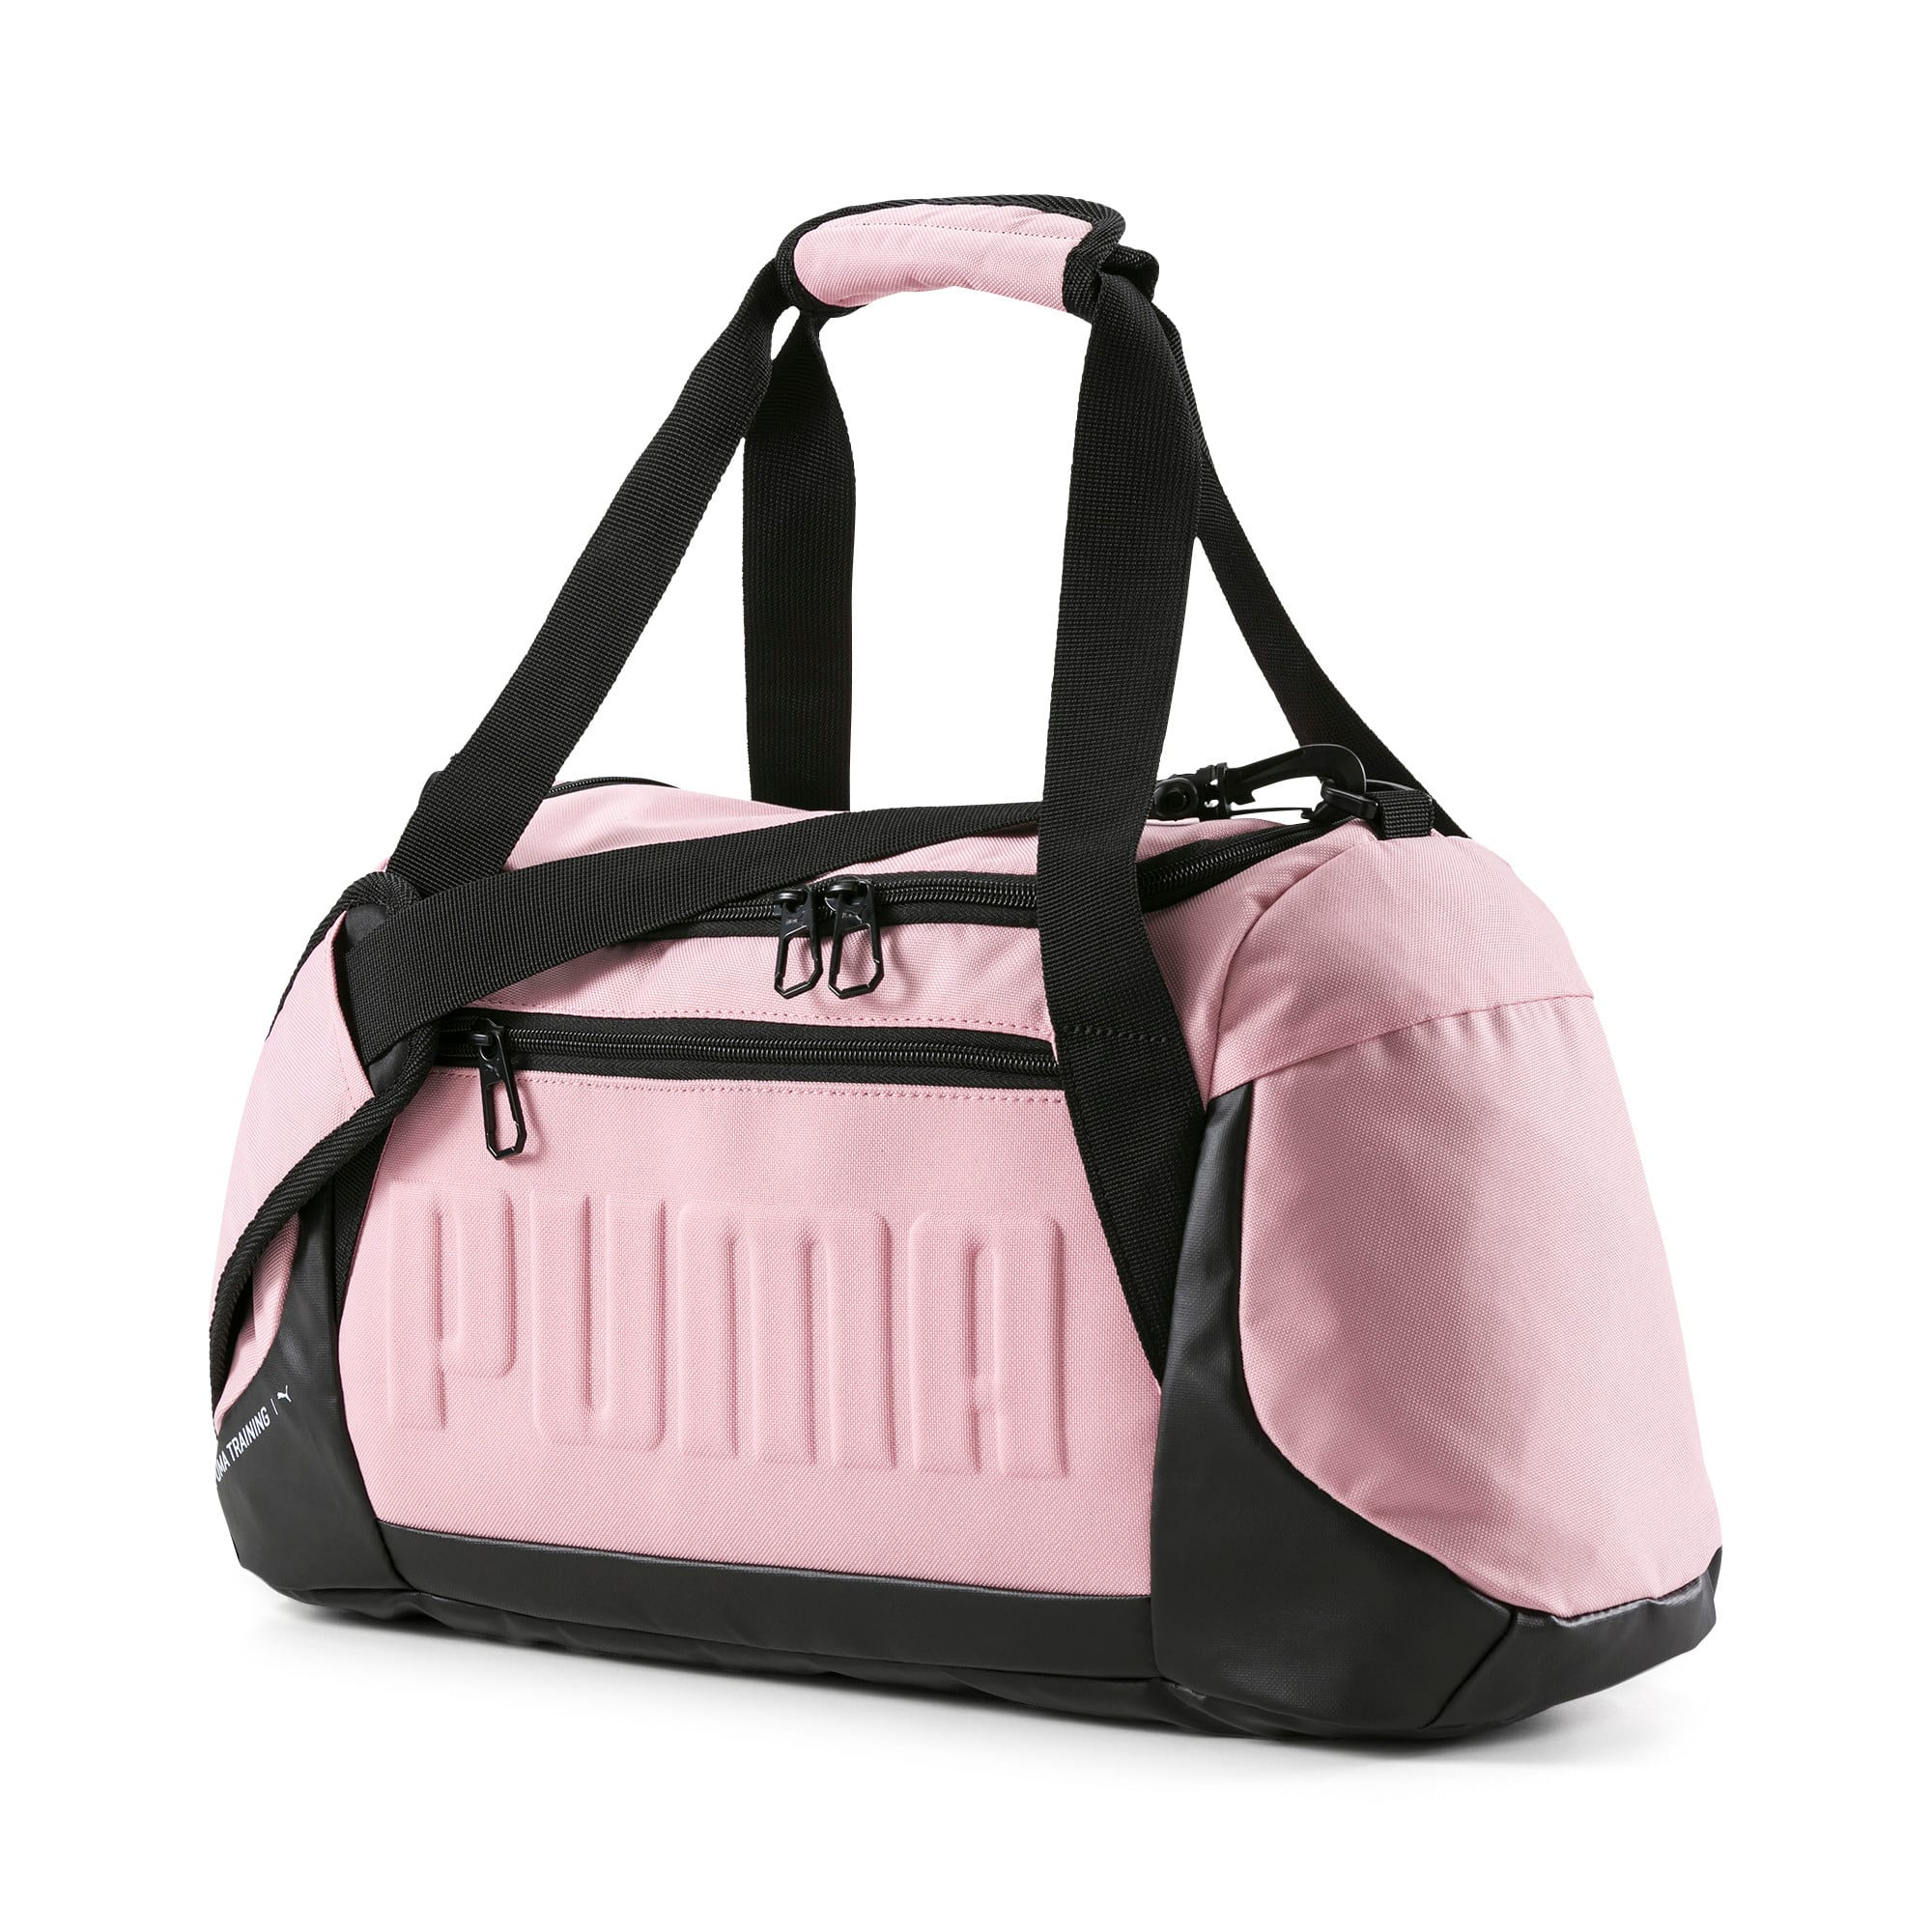 Thumbnail 1 of Gym Duffel Bag, Bridal Rose, medium